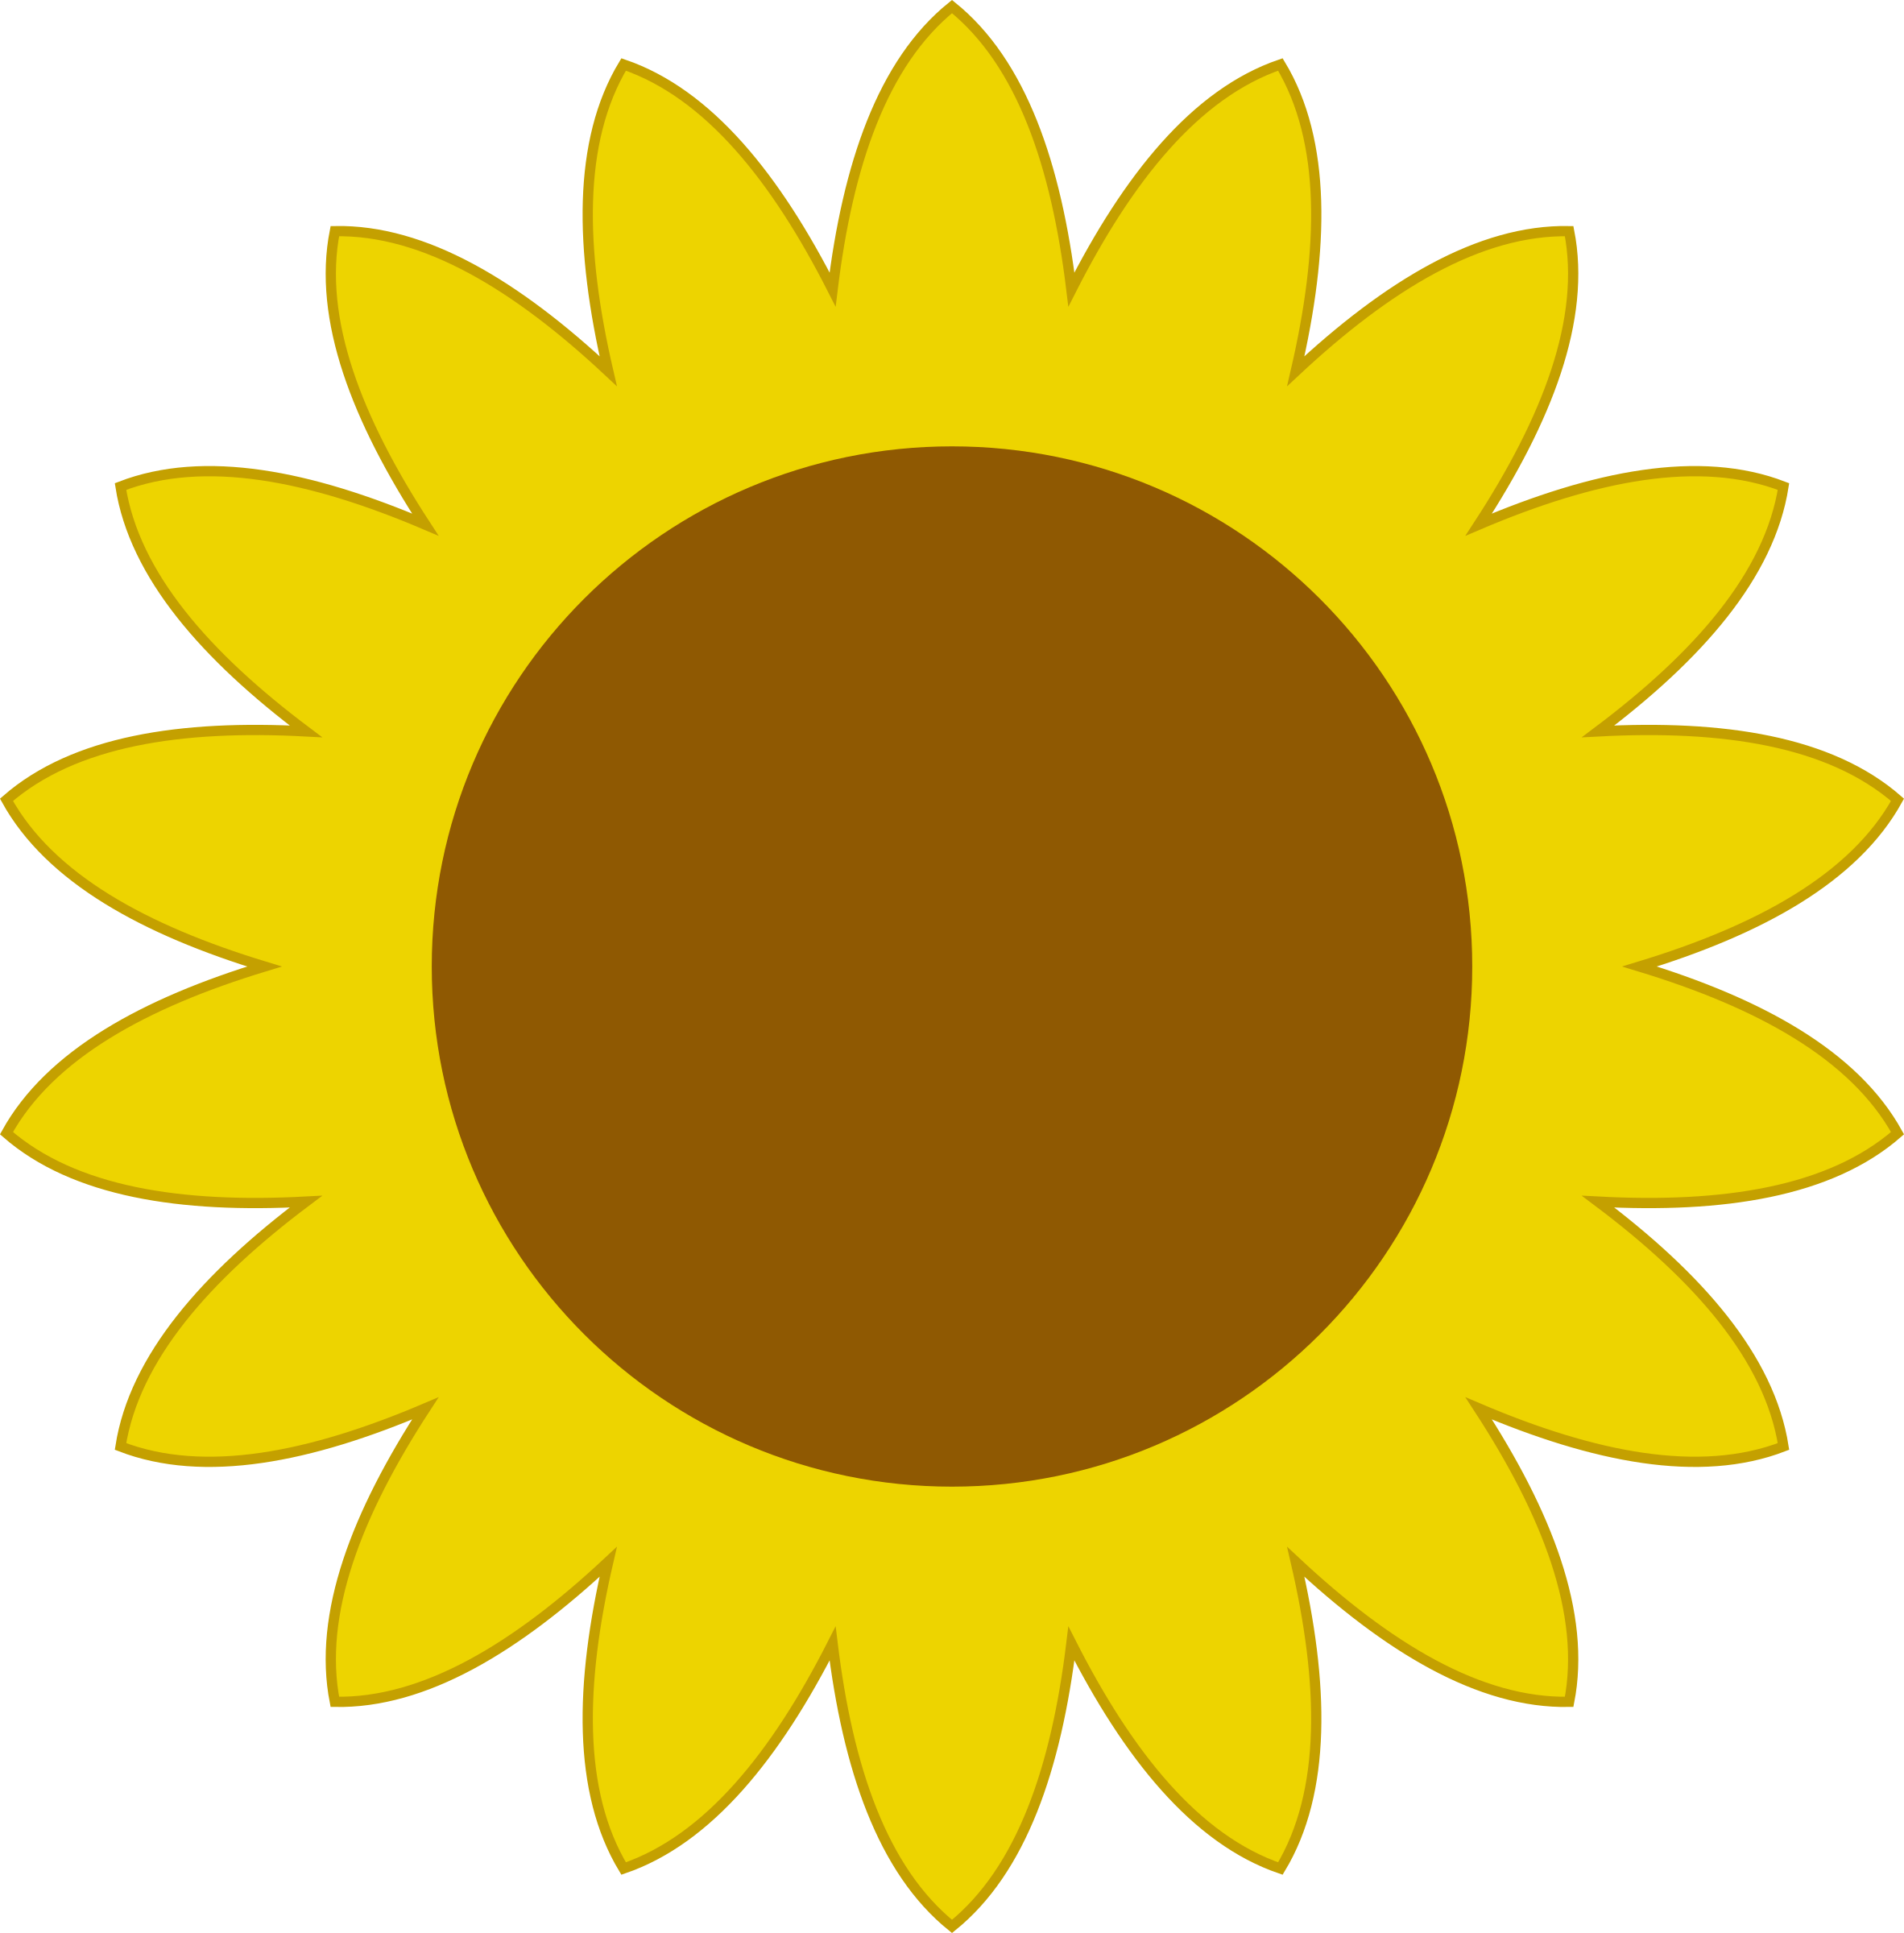 Sunflowers clipart simple. Sunflower big image png